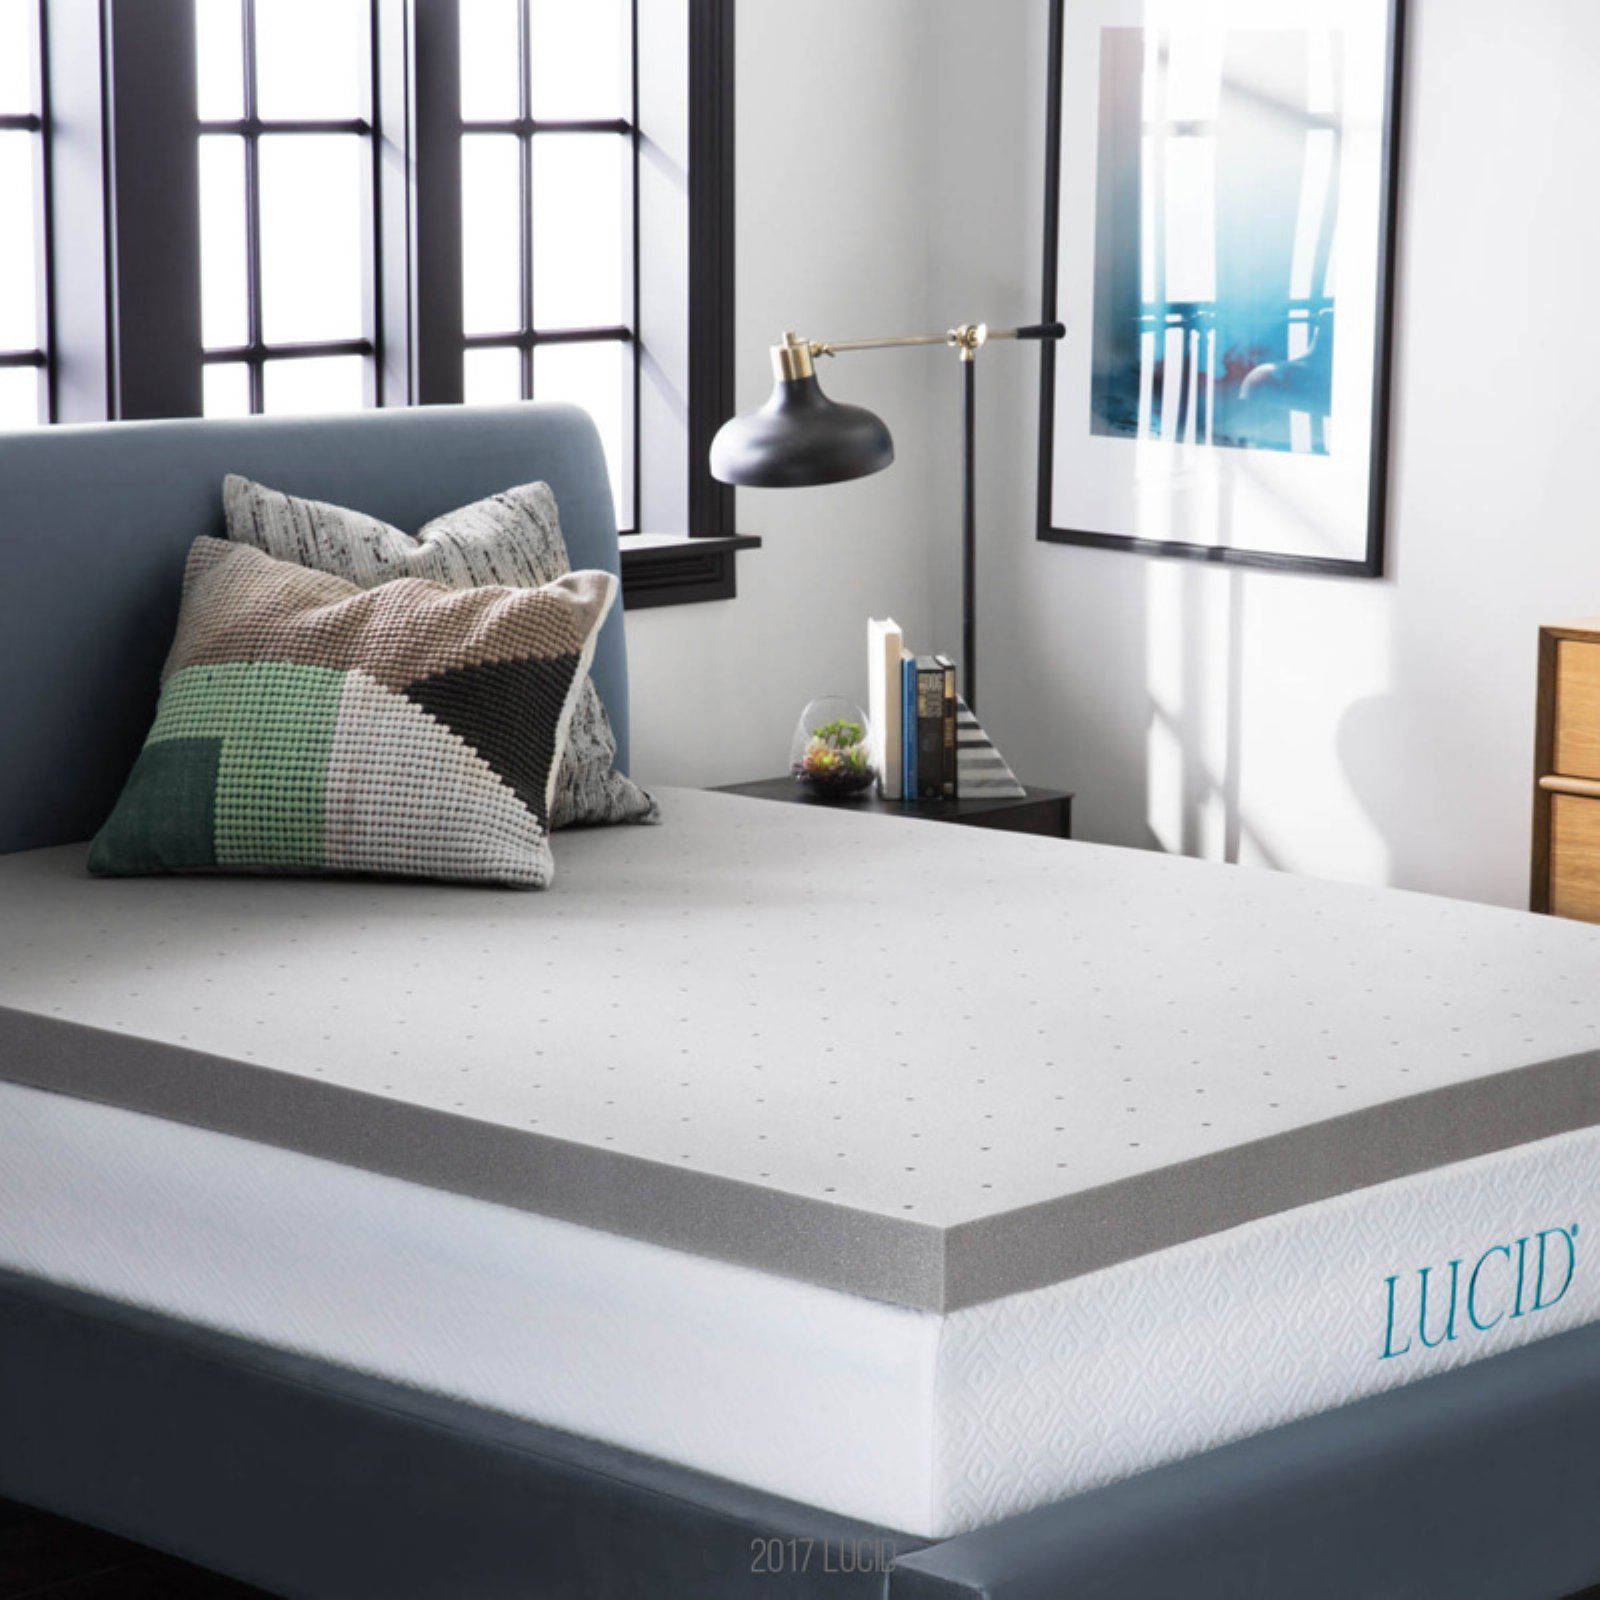 Lucid 3 In Bamboo Charcoal Memory Foam Mattress Topper Mattress Memory Foam Mattress Topper Bedding Basics